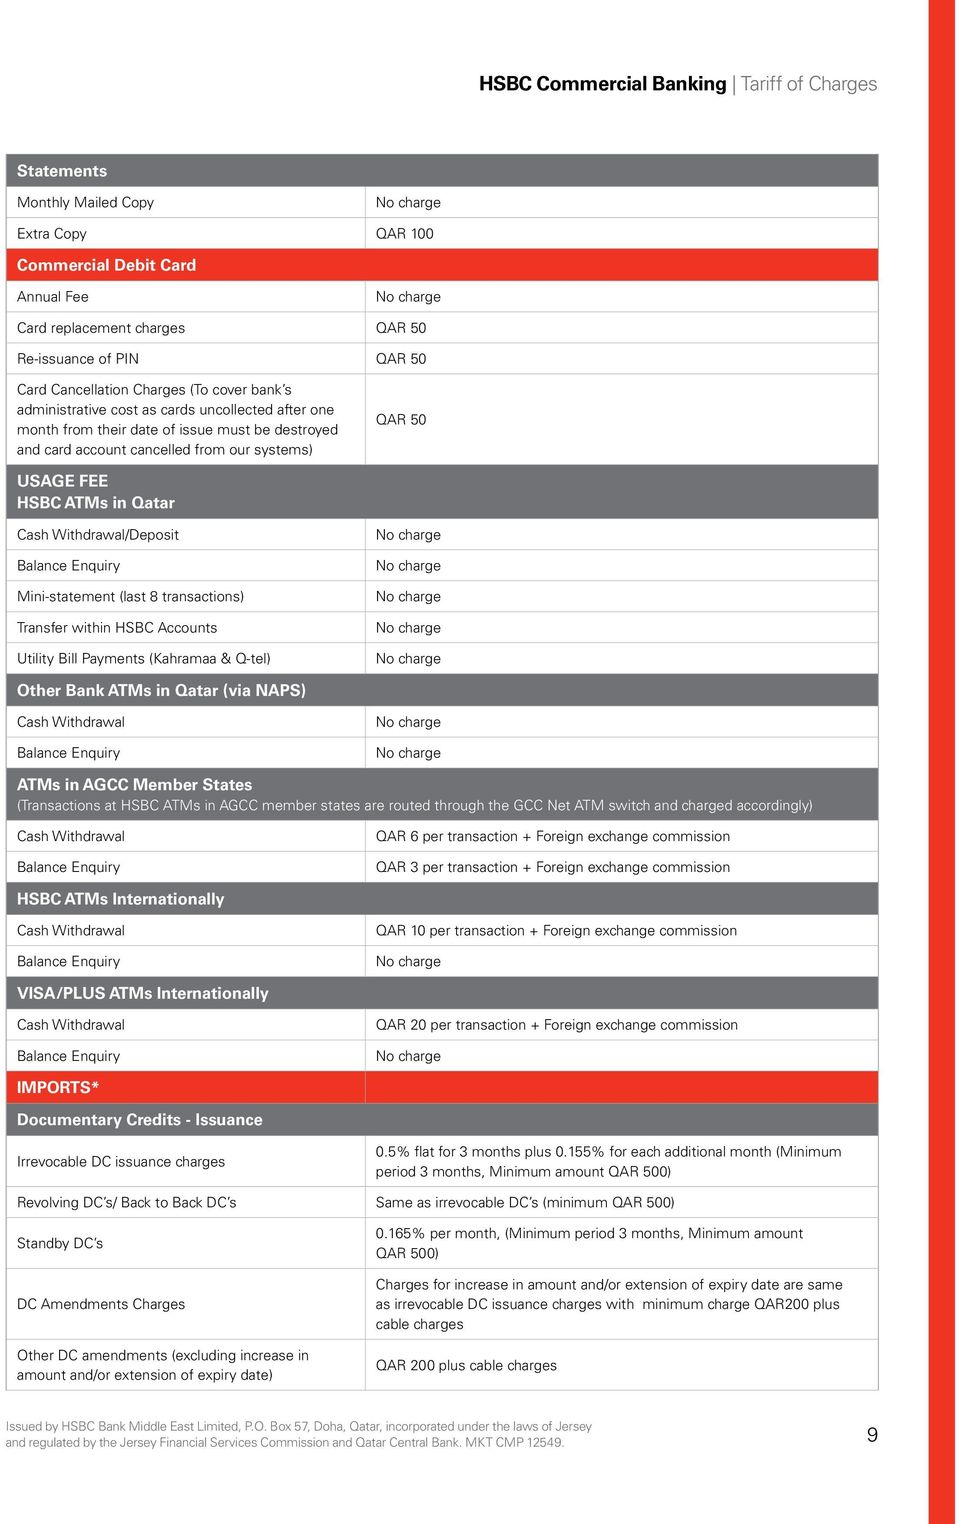 Commercial Banking  Tariff of Charges - PDF